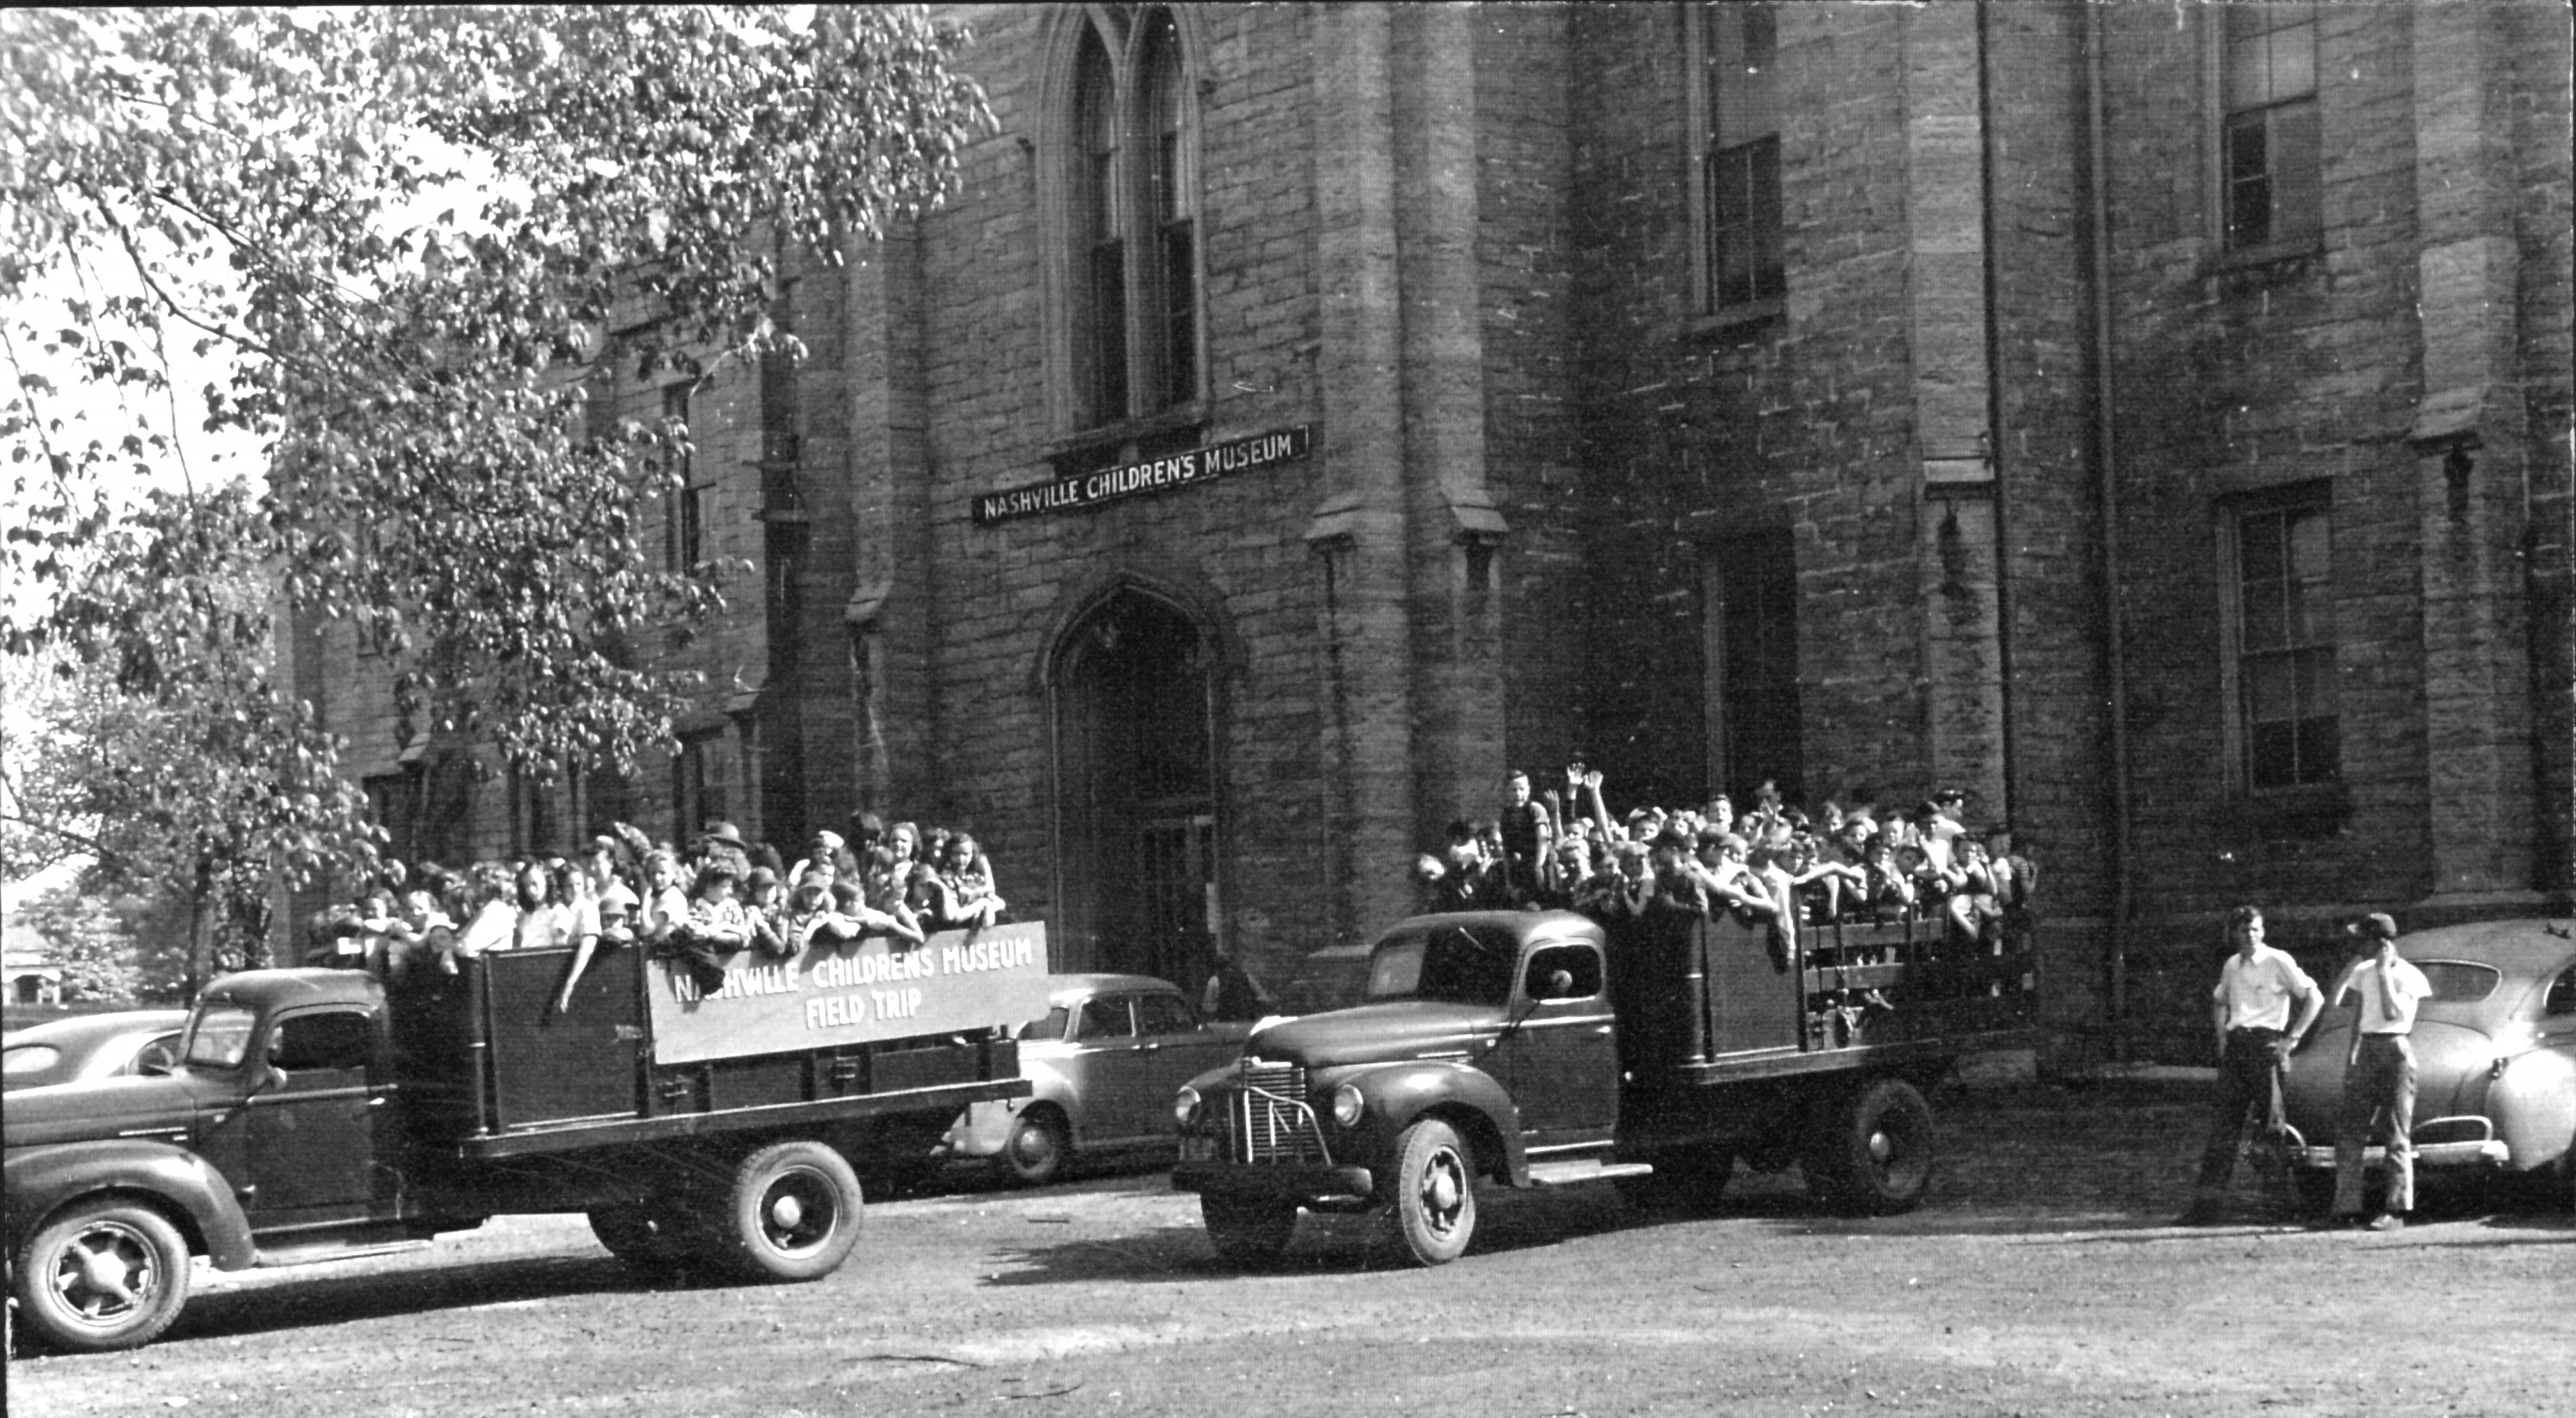 Students arrive to the Museum by the truck-full circa 1950. Credit: Adventure Science Center